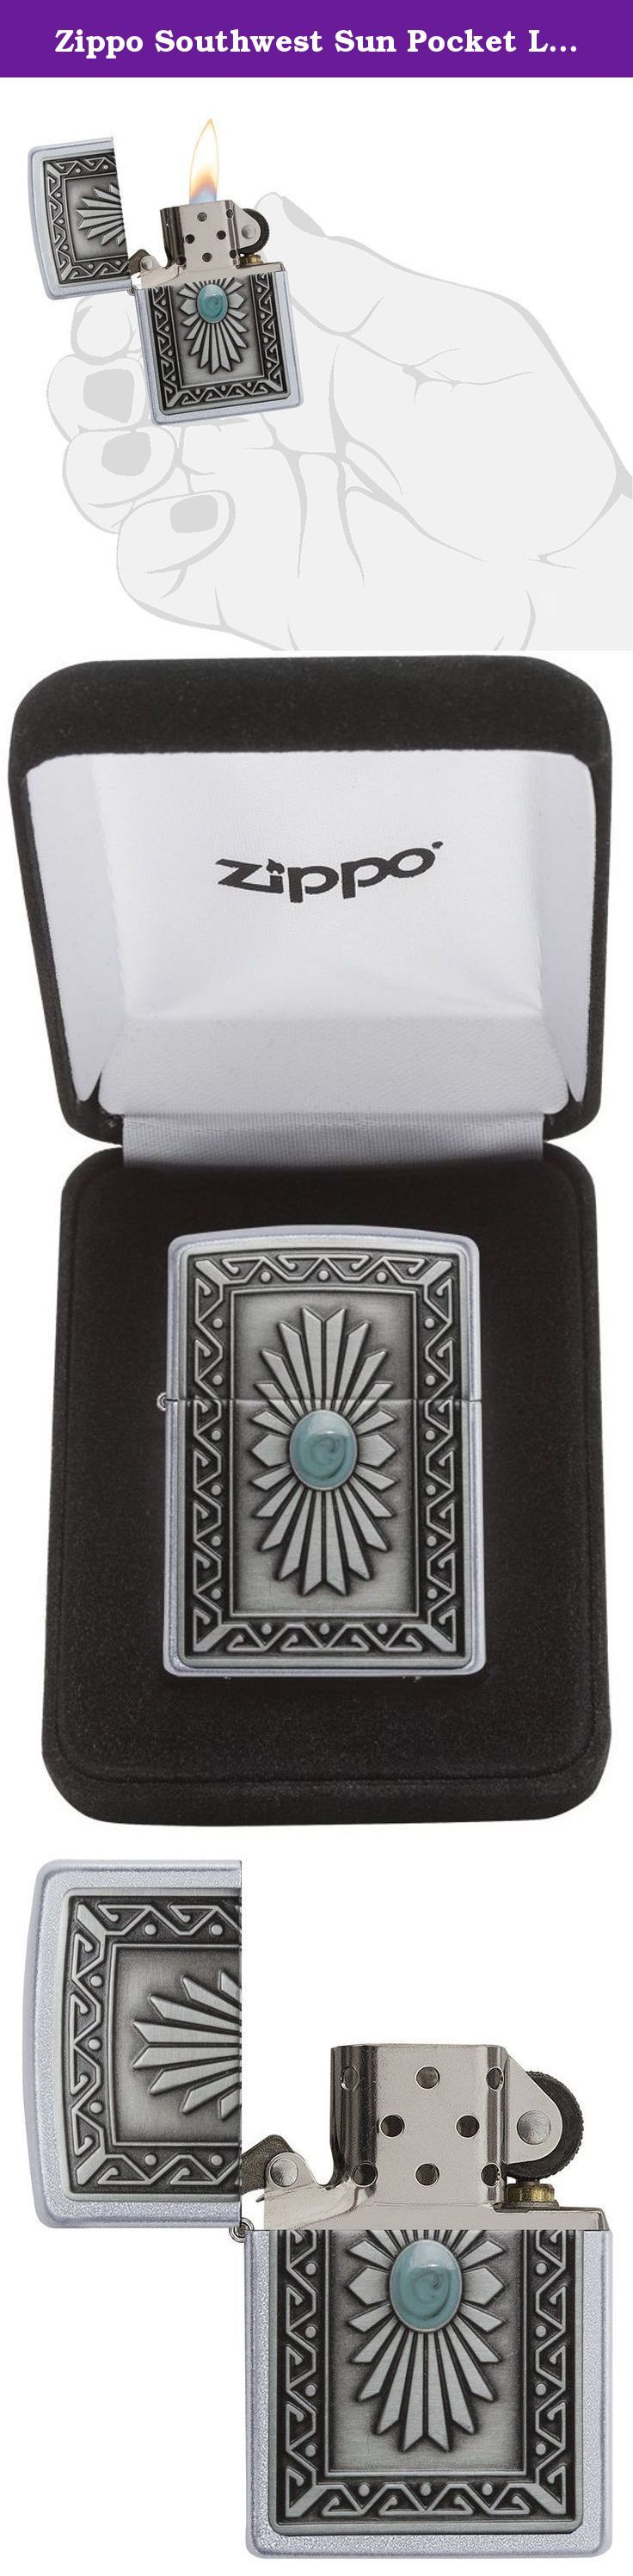 Zippo Southwest Sun Pocket Lighter, Satin Chrome. Classic Zippo Satin Chrome finish lighter has a tribal style design that captures the energy of the Southwestern sun in an attached emblem on a satin chrome lighter. Comes packaged in a black velour hinged box. For optimal performance, use with Zippo premium lighter fluid. Lifetime guarantee. Made in USA.